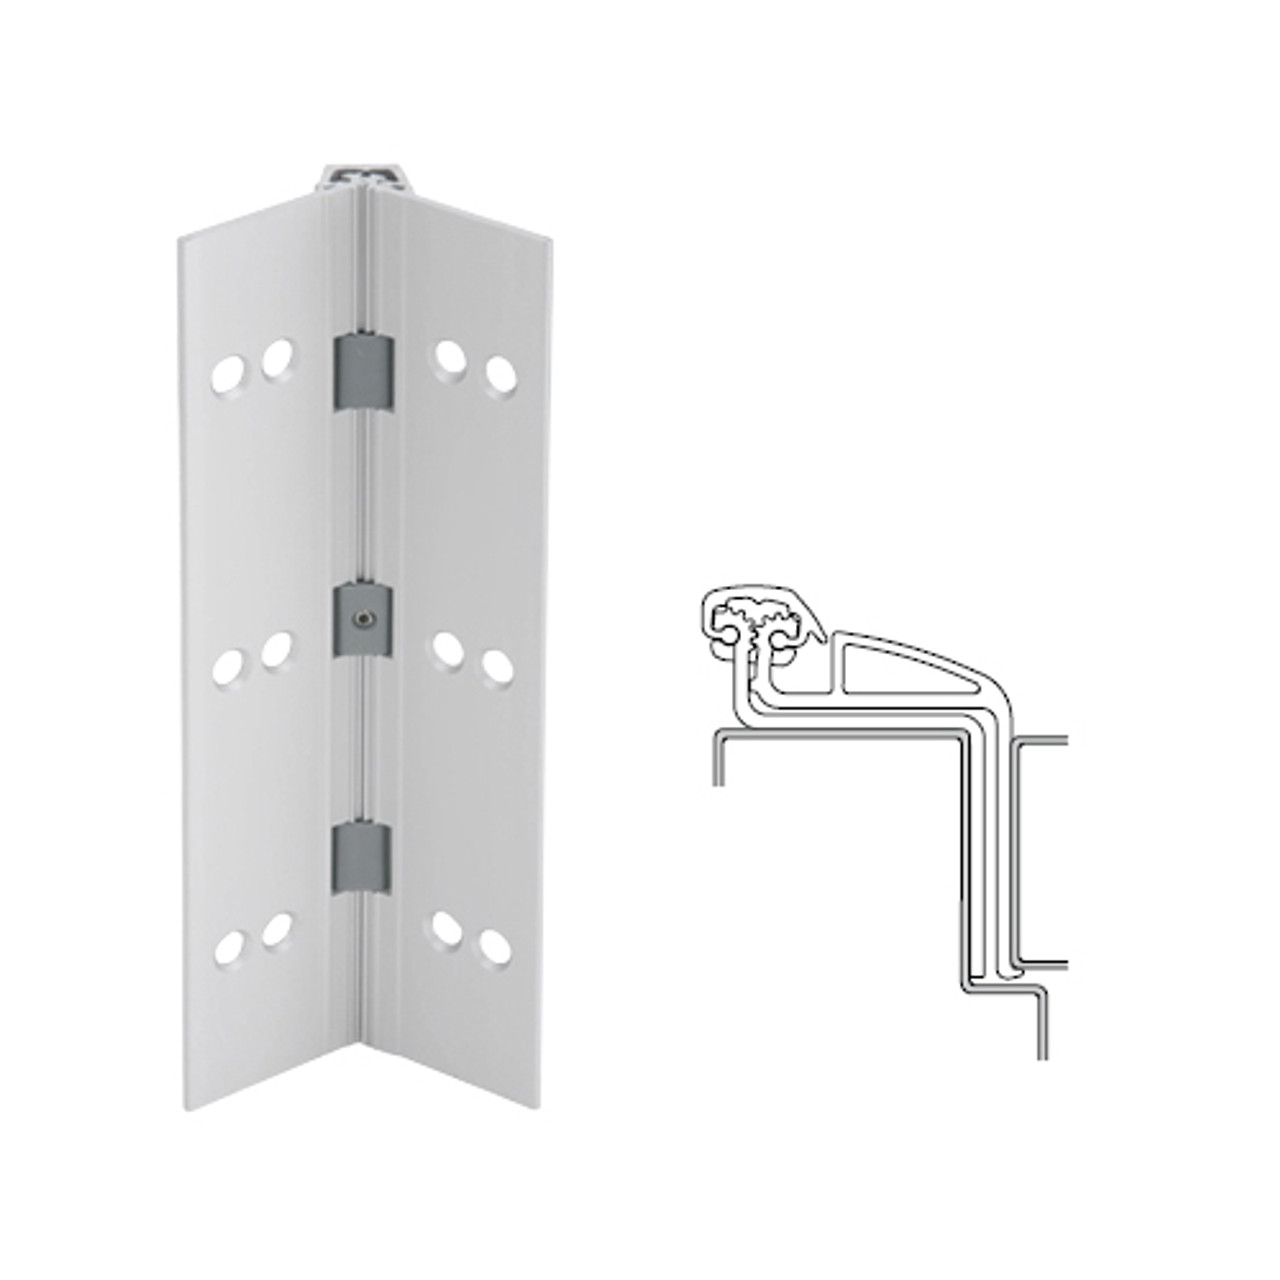 041XY-US28-83-SECWDWD IVES Full Mortise Continuous Geared Hinges with Security Screws - Hex Pin Drive in Satin Aluminum